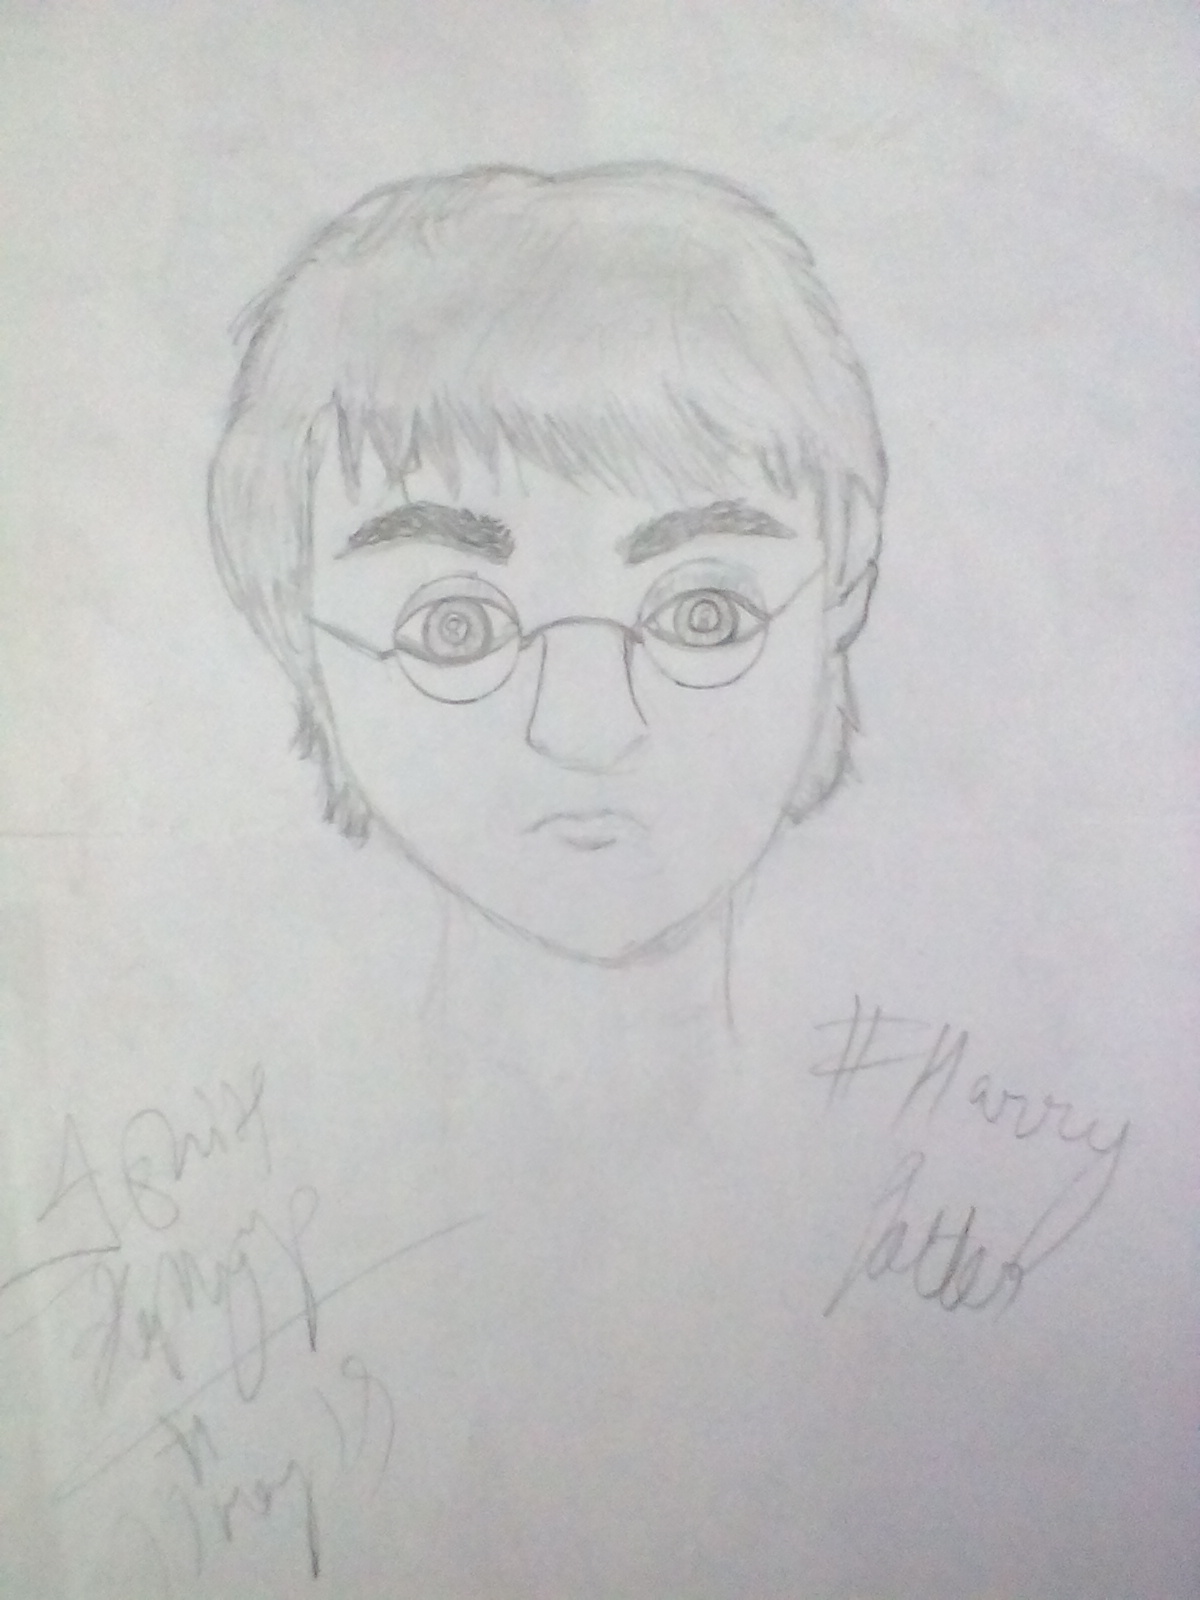 First ever portrait of Harry made by me ..😊😊